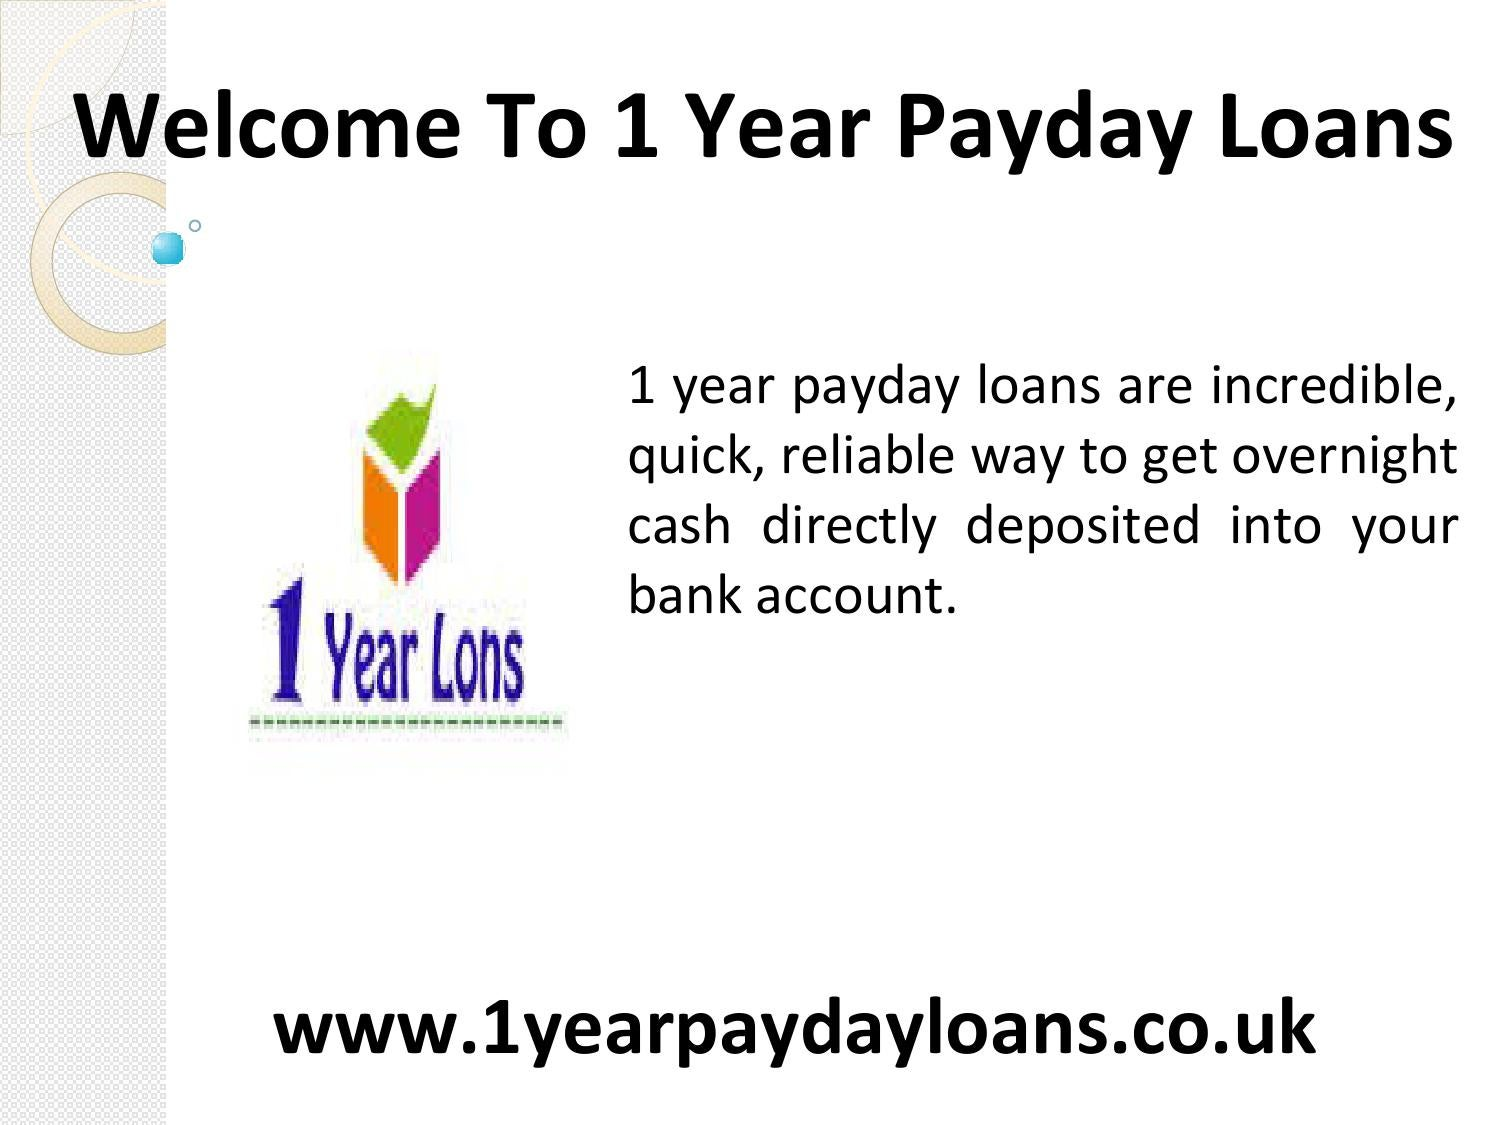 Payday loans park st madison wi image 8